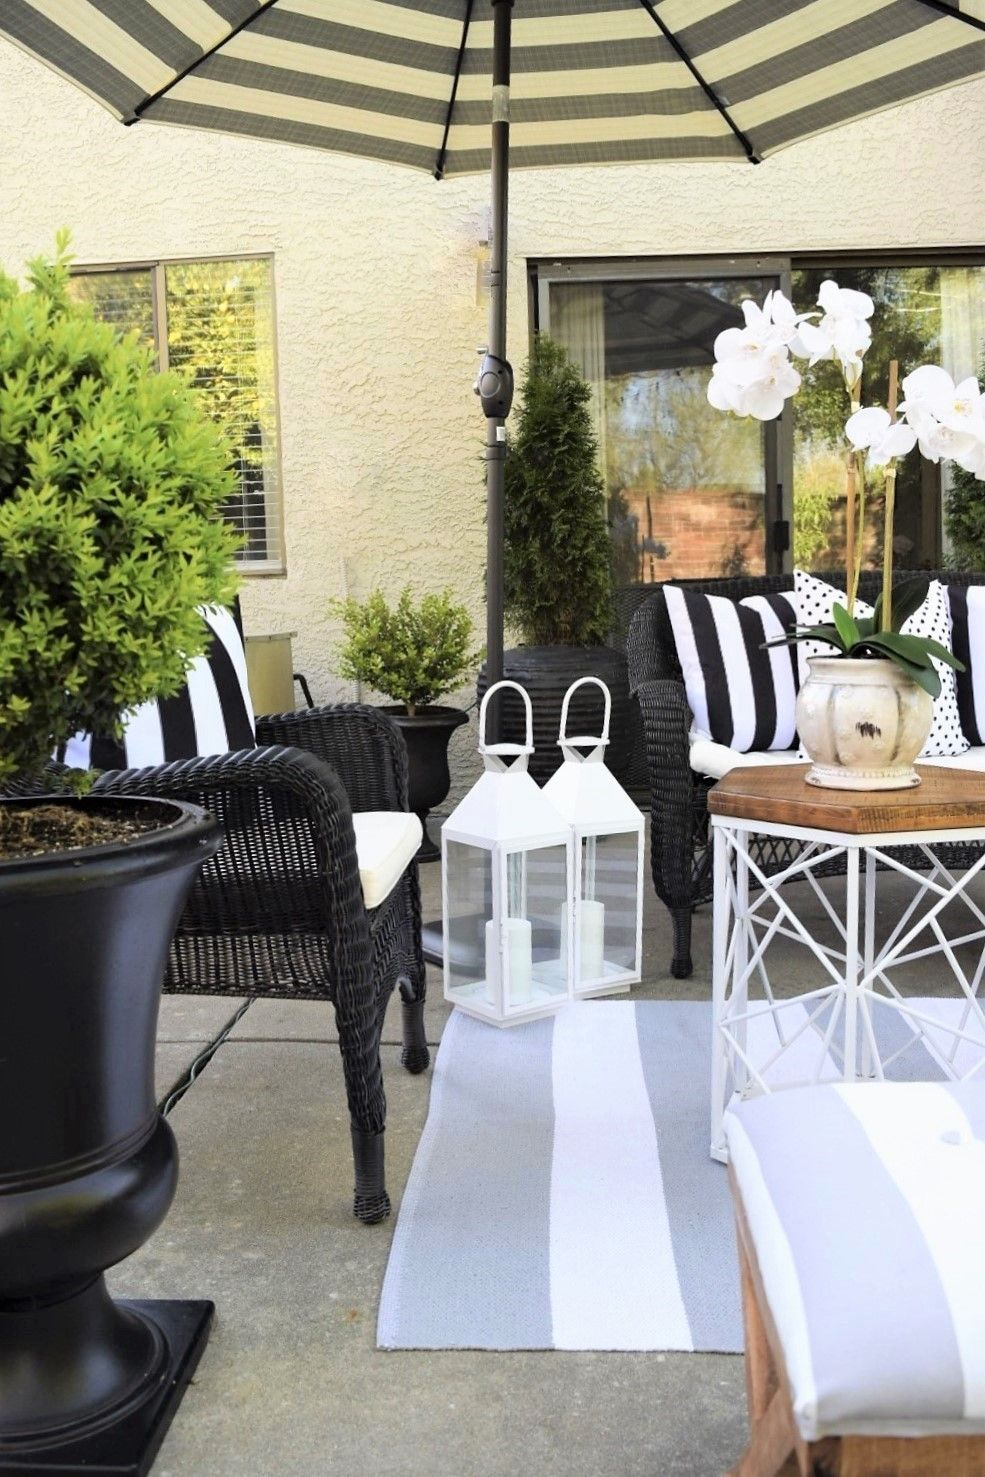 Patio 101: Bring Life to Your Outdoor Space | Patio ... on Living Spaces Patio Set id=32739